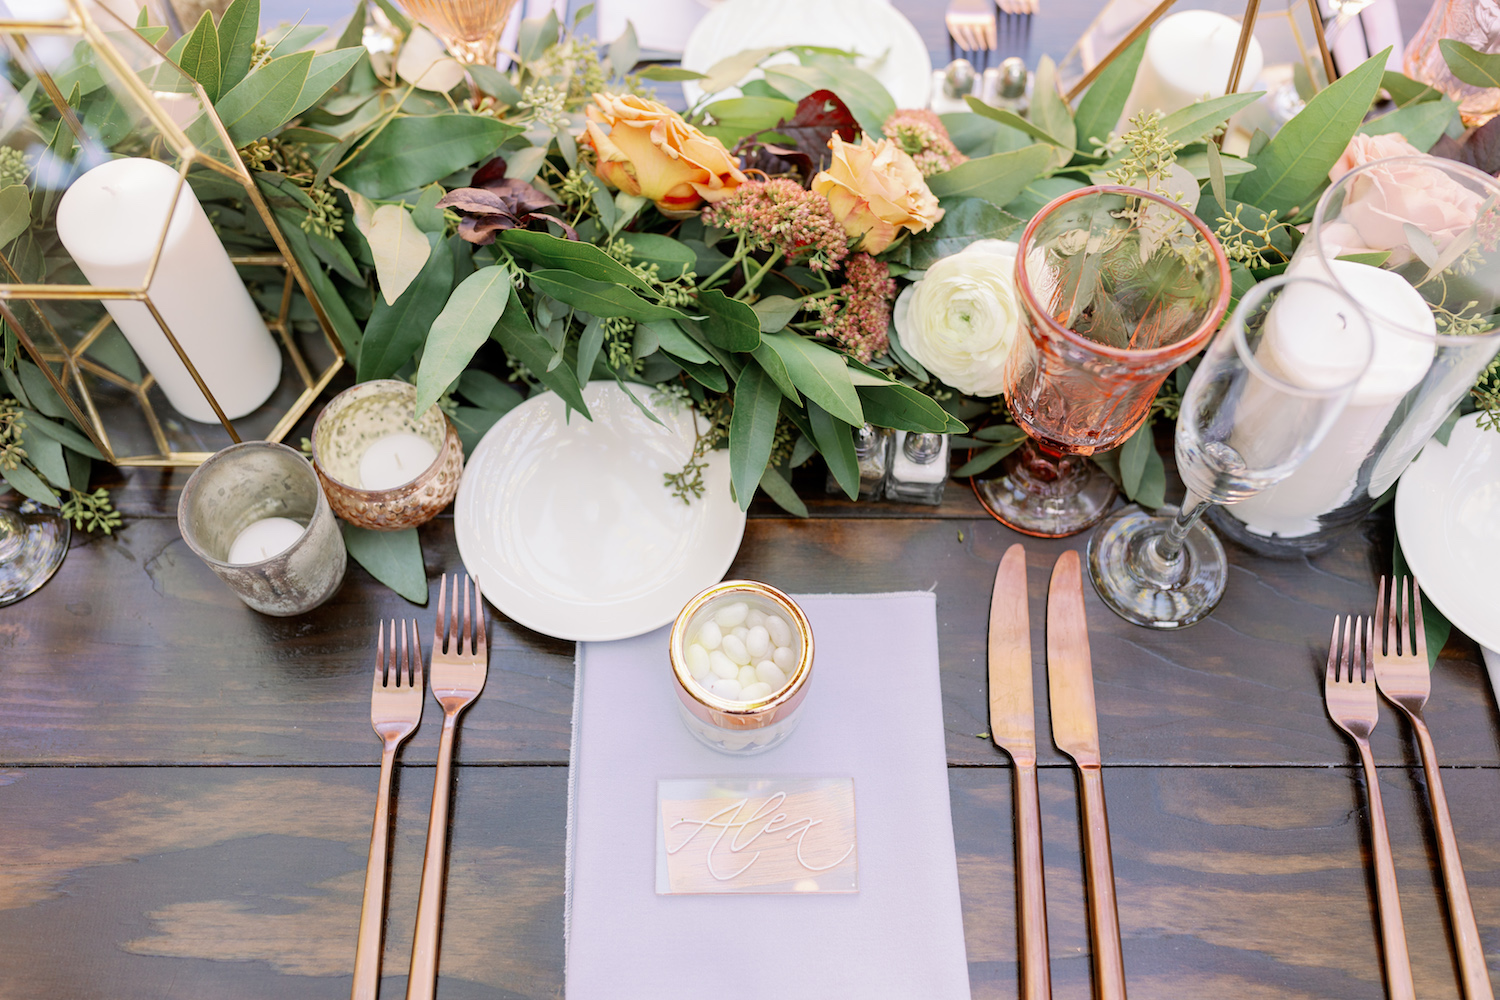 Rose Gold Flatware on Wedding Table.